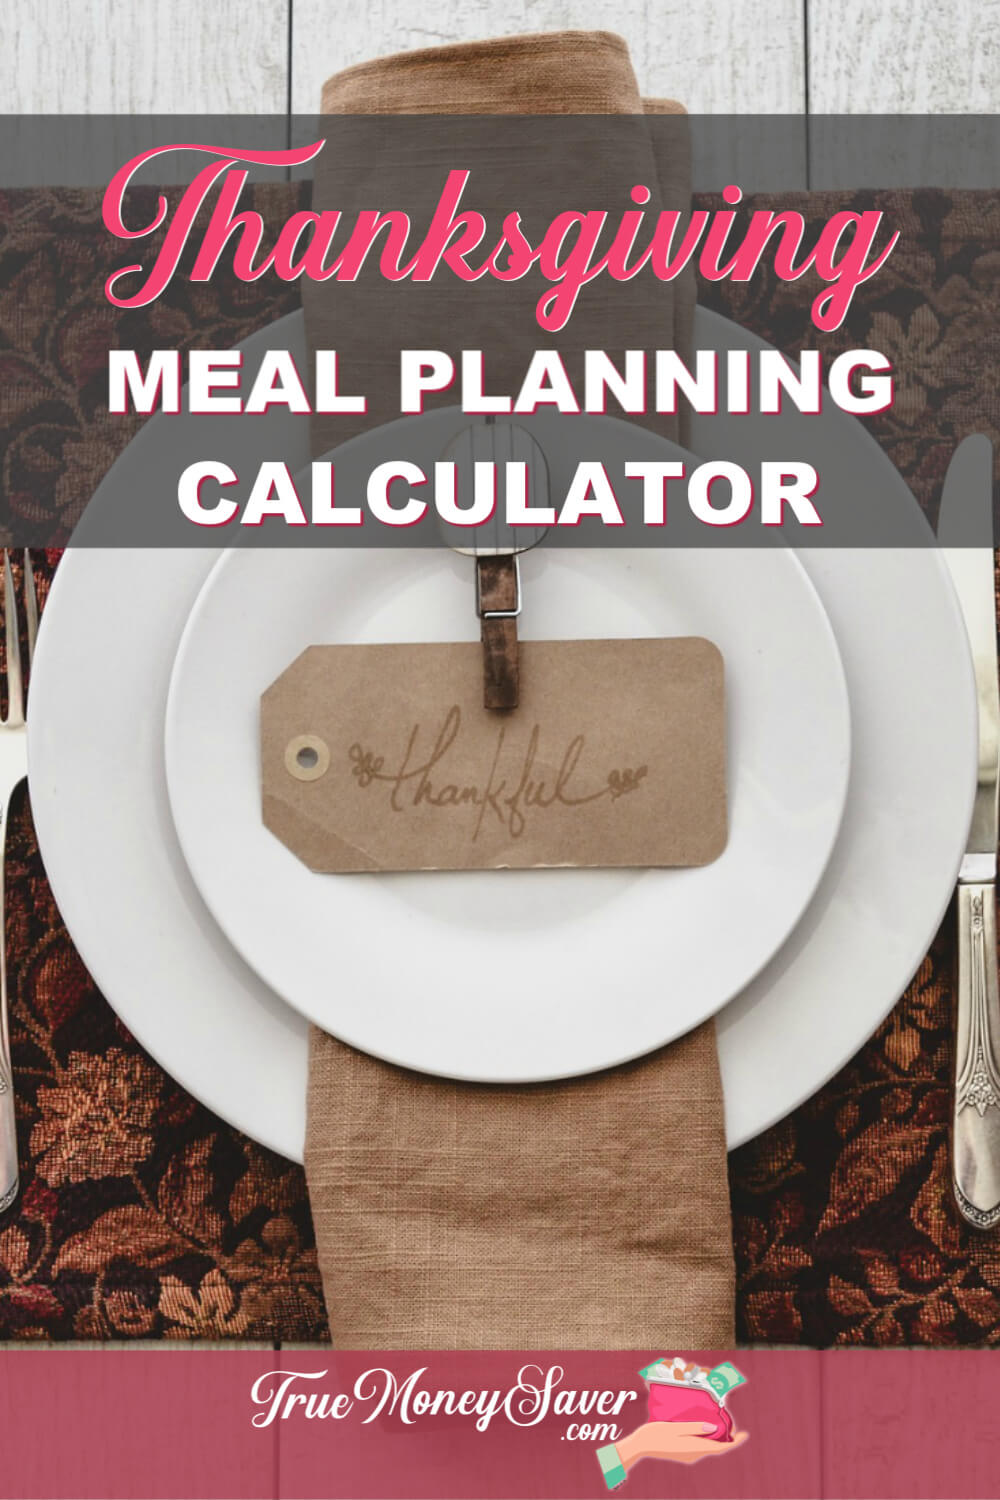 (FREE Download) Thanksgiving Meal Planner Calculator – Know How Much Food You'll Need!